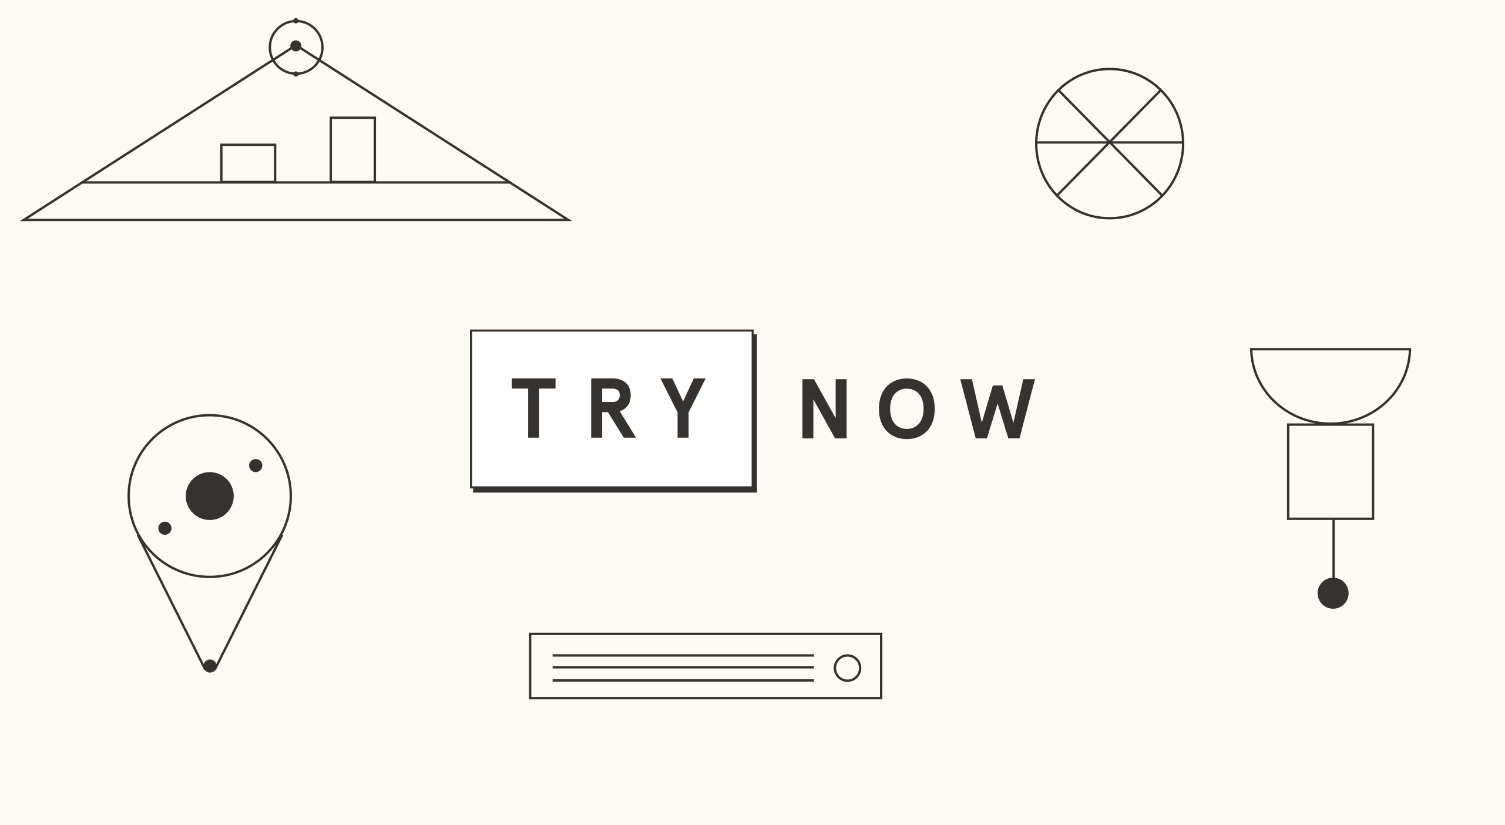 Try now logo and abstract line illustrations